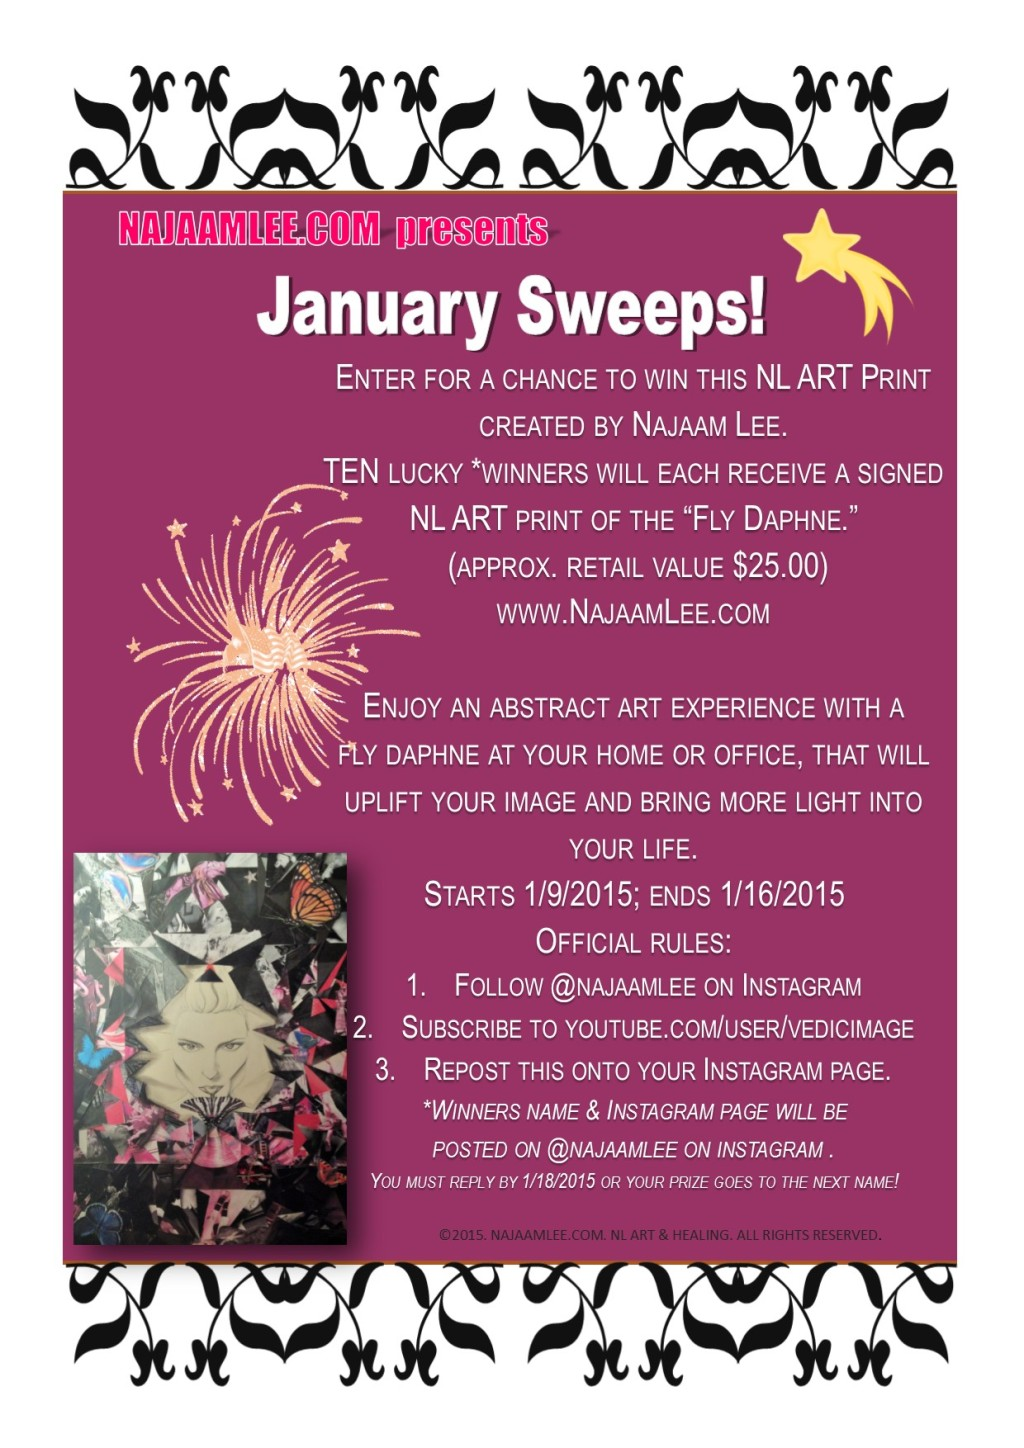 giveaways, sweepstakes, january sweeps, art, prints, artworks, najaam lee, instagram, youtube